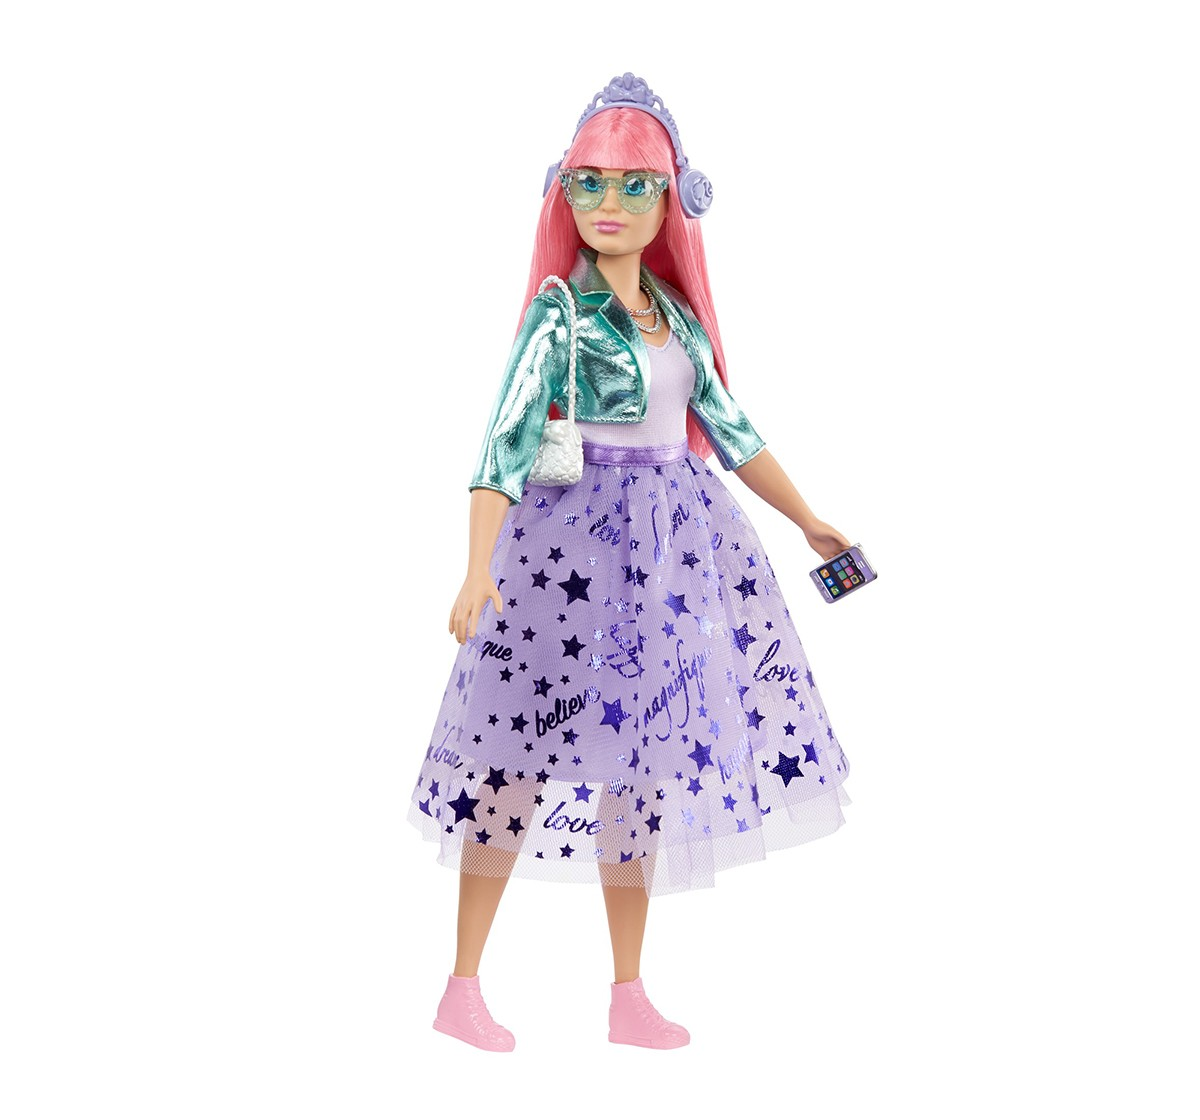 Barbie Deluxe Princess Doll,  Dolls & Accessories for Girls age 3Y+ (Assorted)